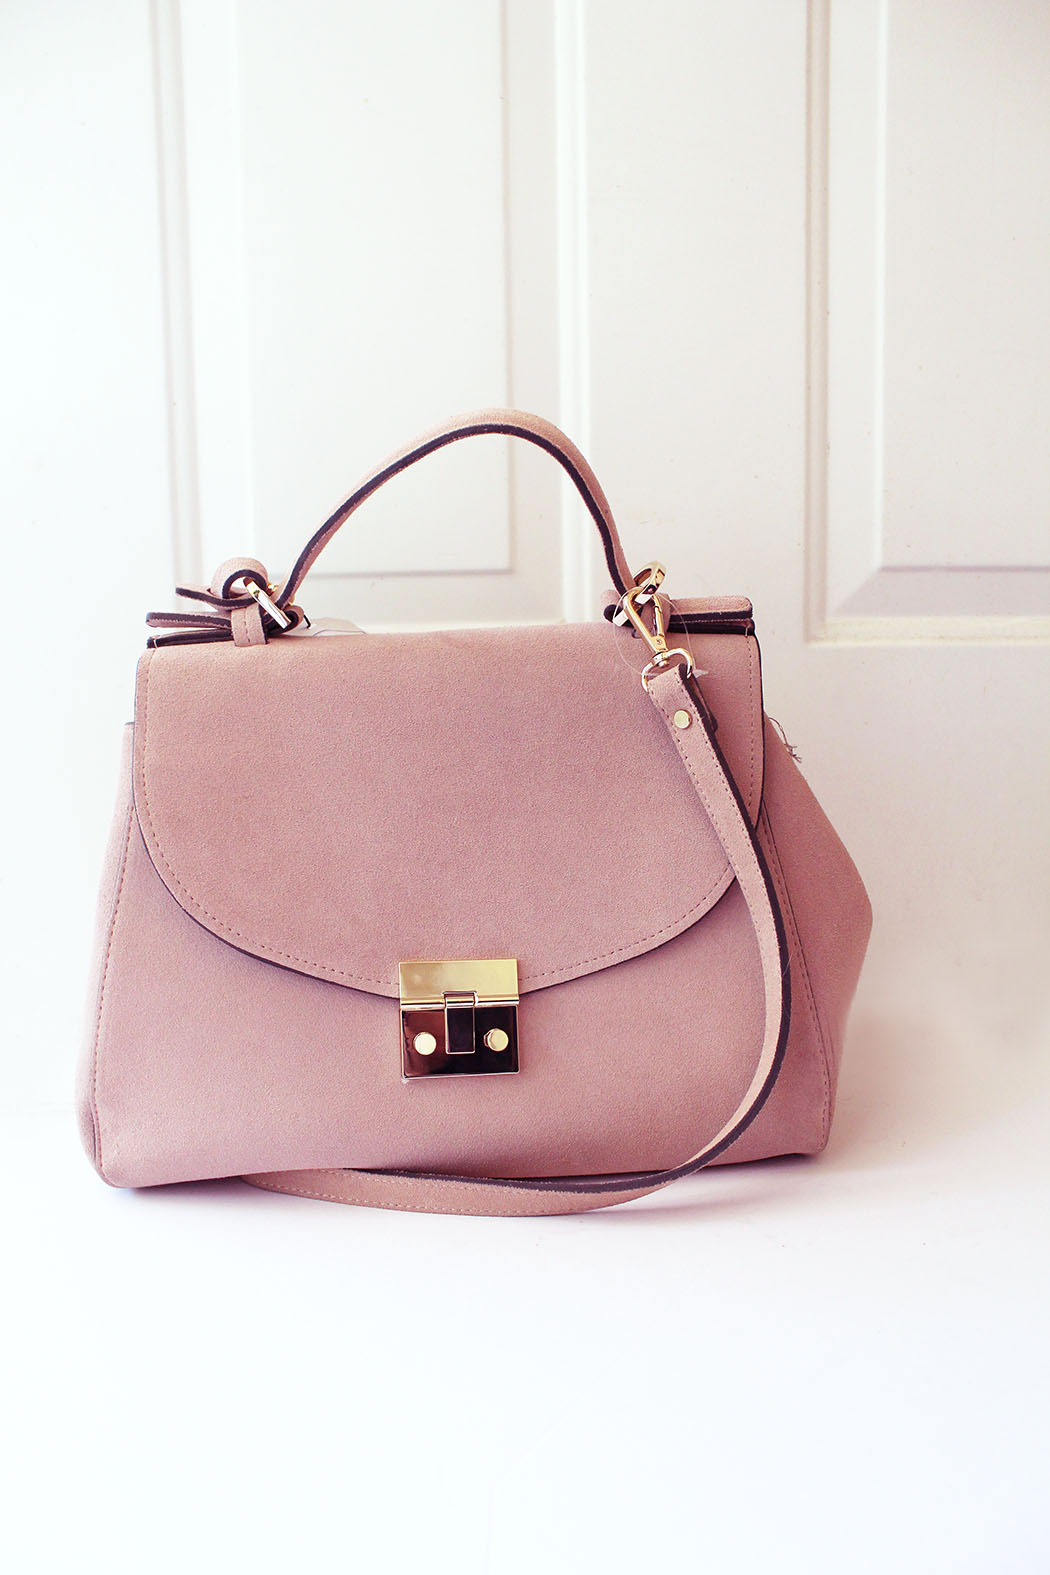 Top A Dusty Pink Satchel From Zara and a Lovely Way to Say Hello to  JJ98